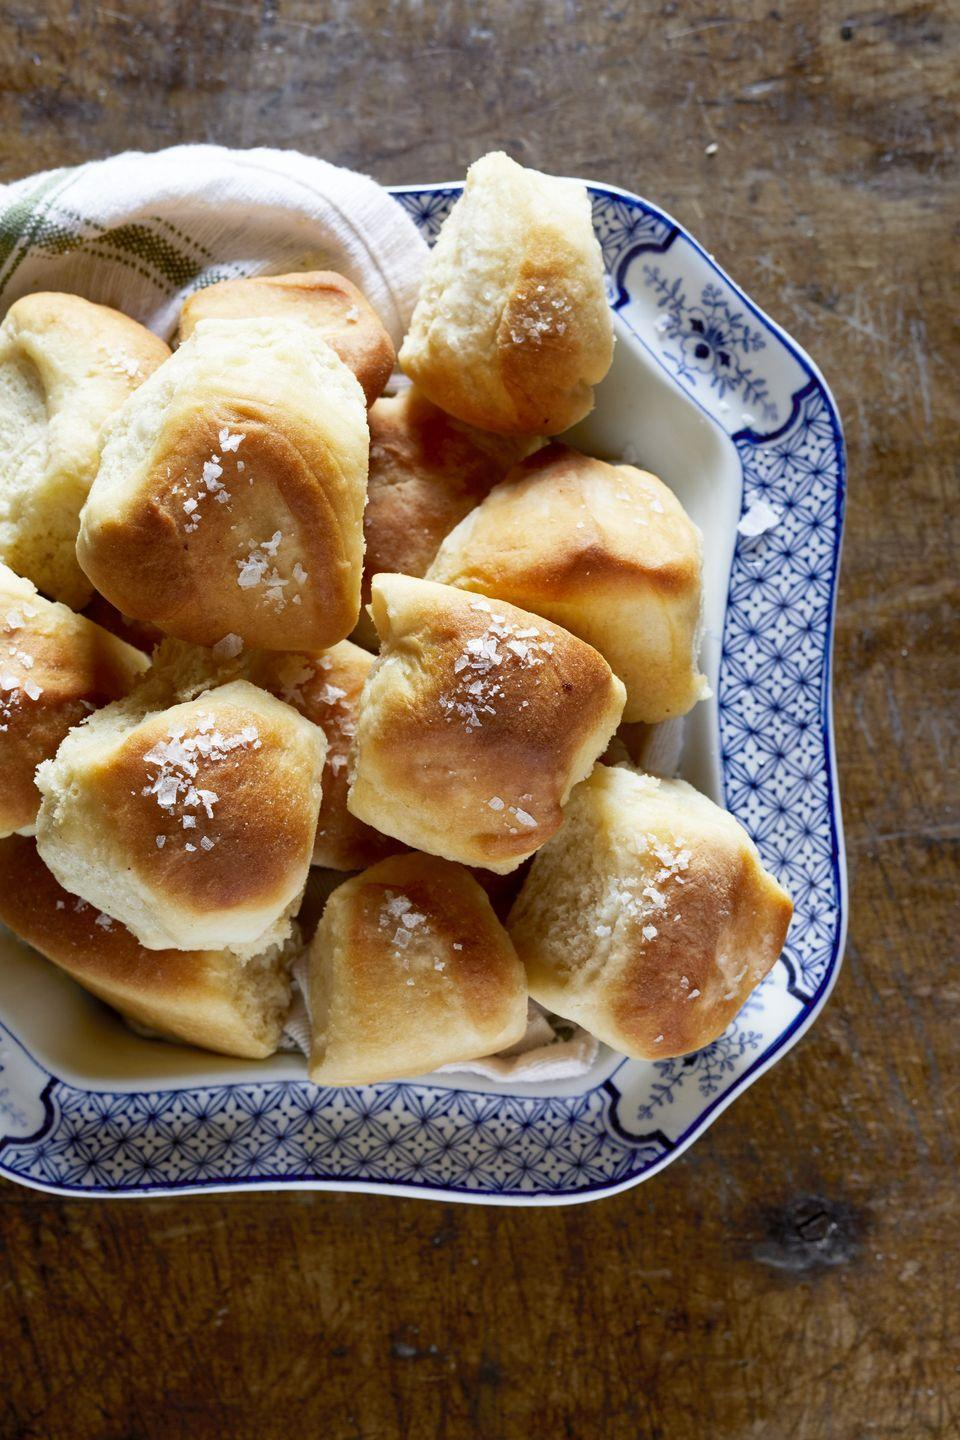 "<p>Pass the rolls, please! In particular, these soft Parker House ones topped with a pinch of sea salt.</p><p><strong><a href=""https://www.countryliving.com/food-drinks/a29144926/nancy-fuller-parker-house-rolls/"" rel=""nofollow noopener"" target=""_blank"" data-ylk=""slk:Get the recipe"" class=""link rapid-noclick-resp"">Get the recipe</a>.</strong></p><p><strong><a class=""link rapid-noclick-resp"" href=""https://www.amazon.com/Cuisinart-AMB-9RCK-Classic-Nonstick-Bakeware/dp/B0000ULZX6/?tag=syn-yahoo-20&ascsubtag=%5Bartid%7C10050.g.896%5Bsrc%7Cyahoo-us"" rel=""nofollow noopener"" target=""_blank"" data-ylk=""slk:SHOP CAKE PANS"">SHOP CAKE PANS</a><br></strong></p>"